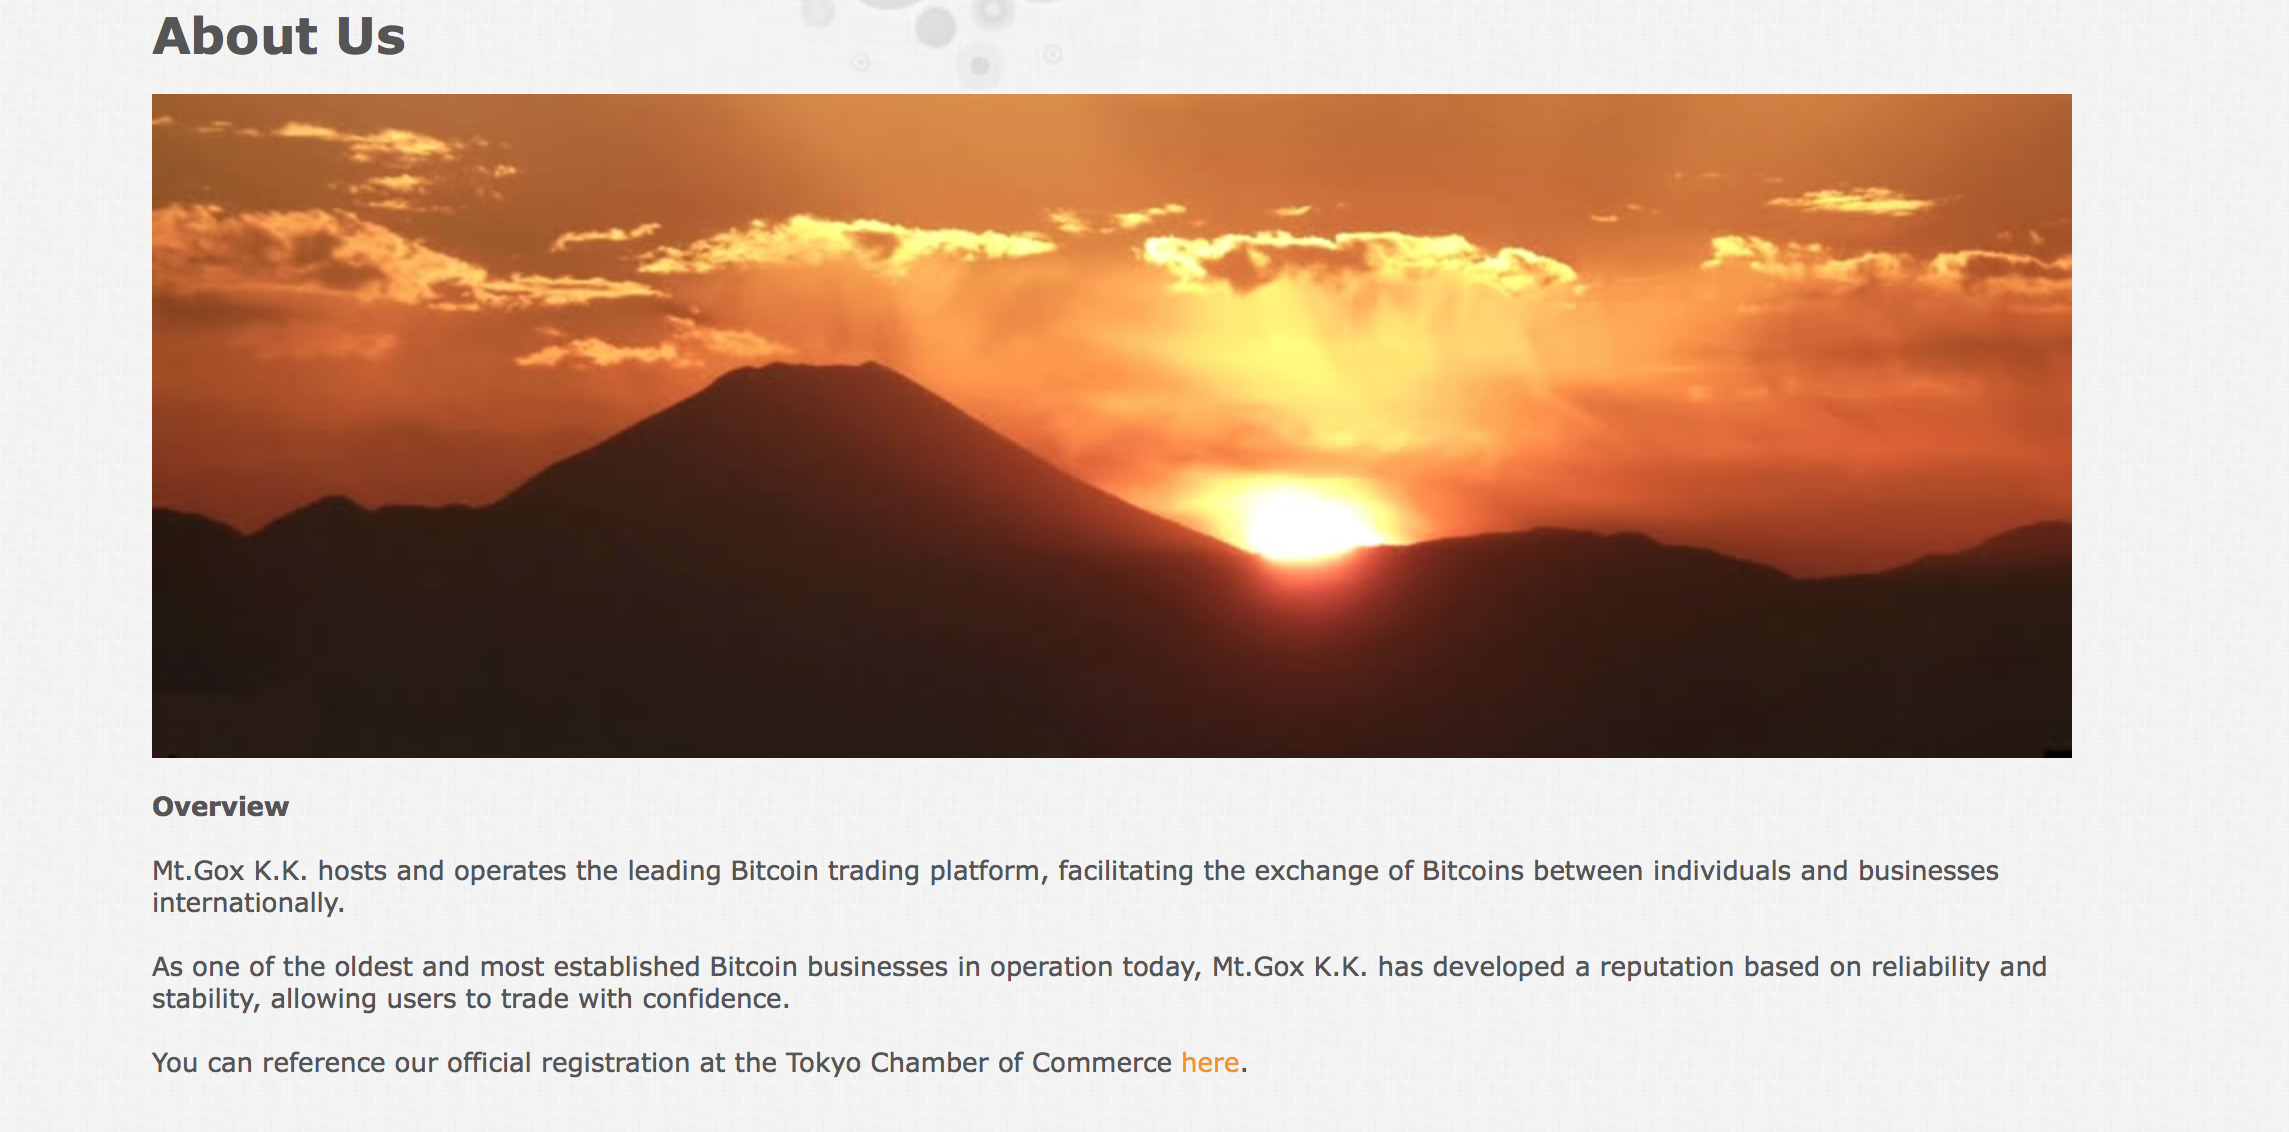 Mt.Gox: The Bitcoin Exchange Eruption Timeline